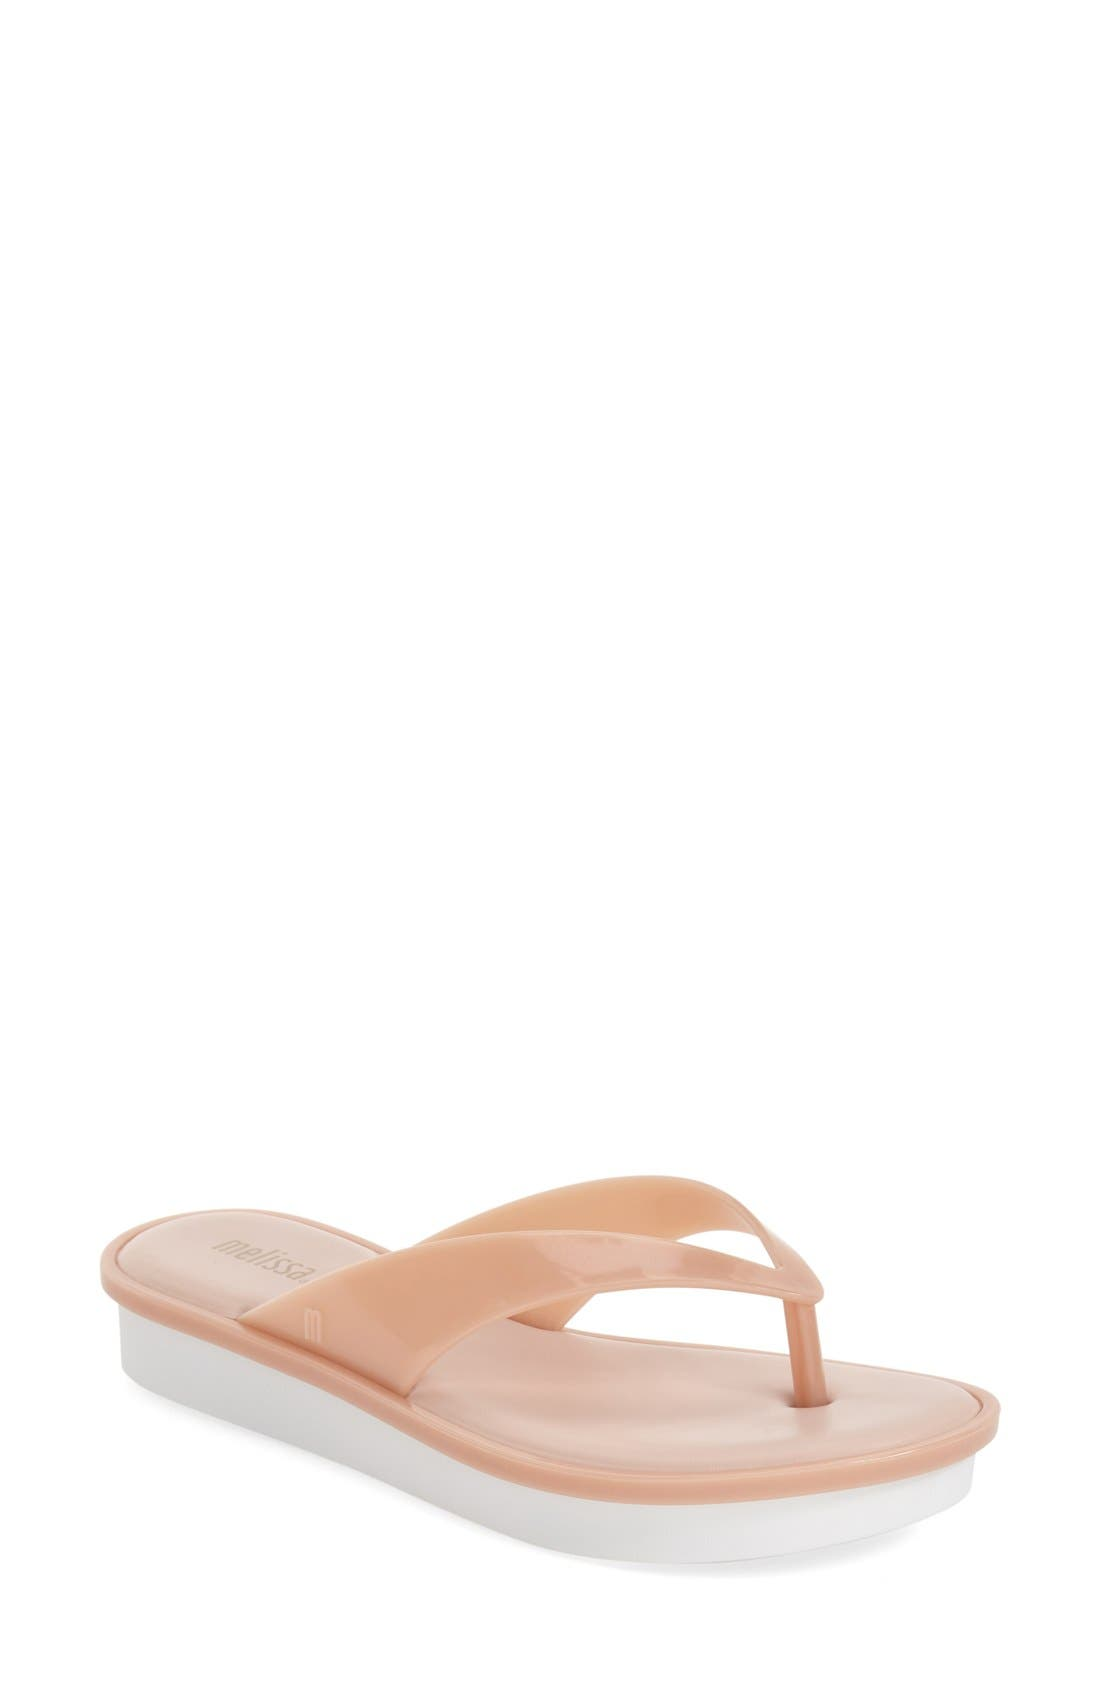 Melissa 'New High' Jelly Platform Flip Flop (Women)